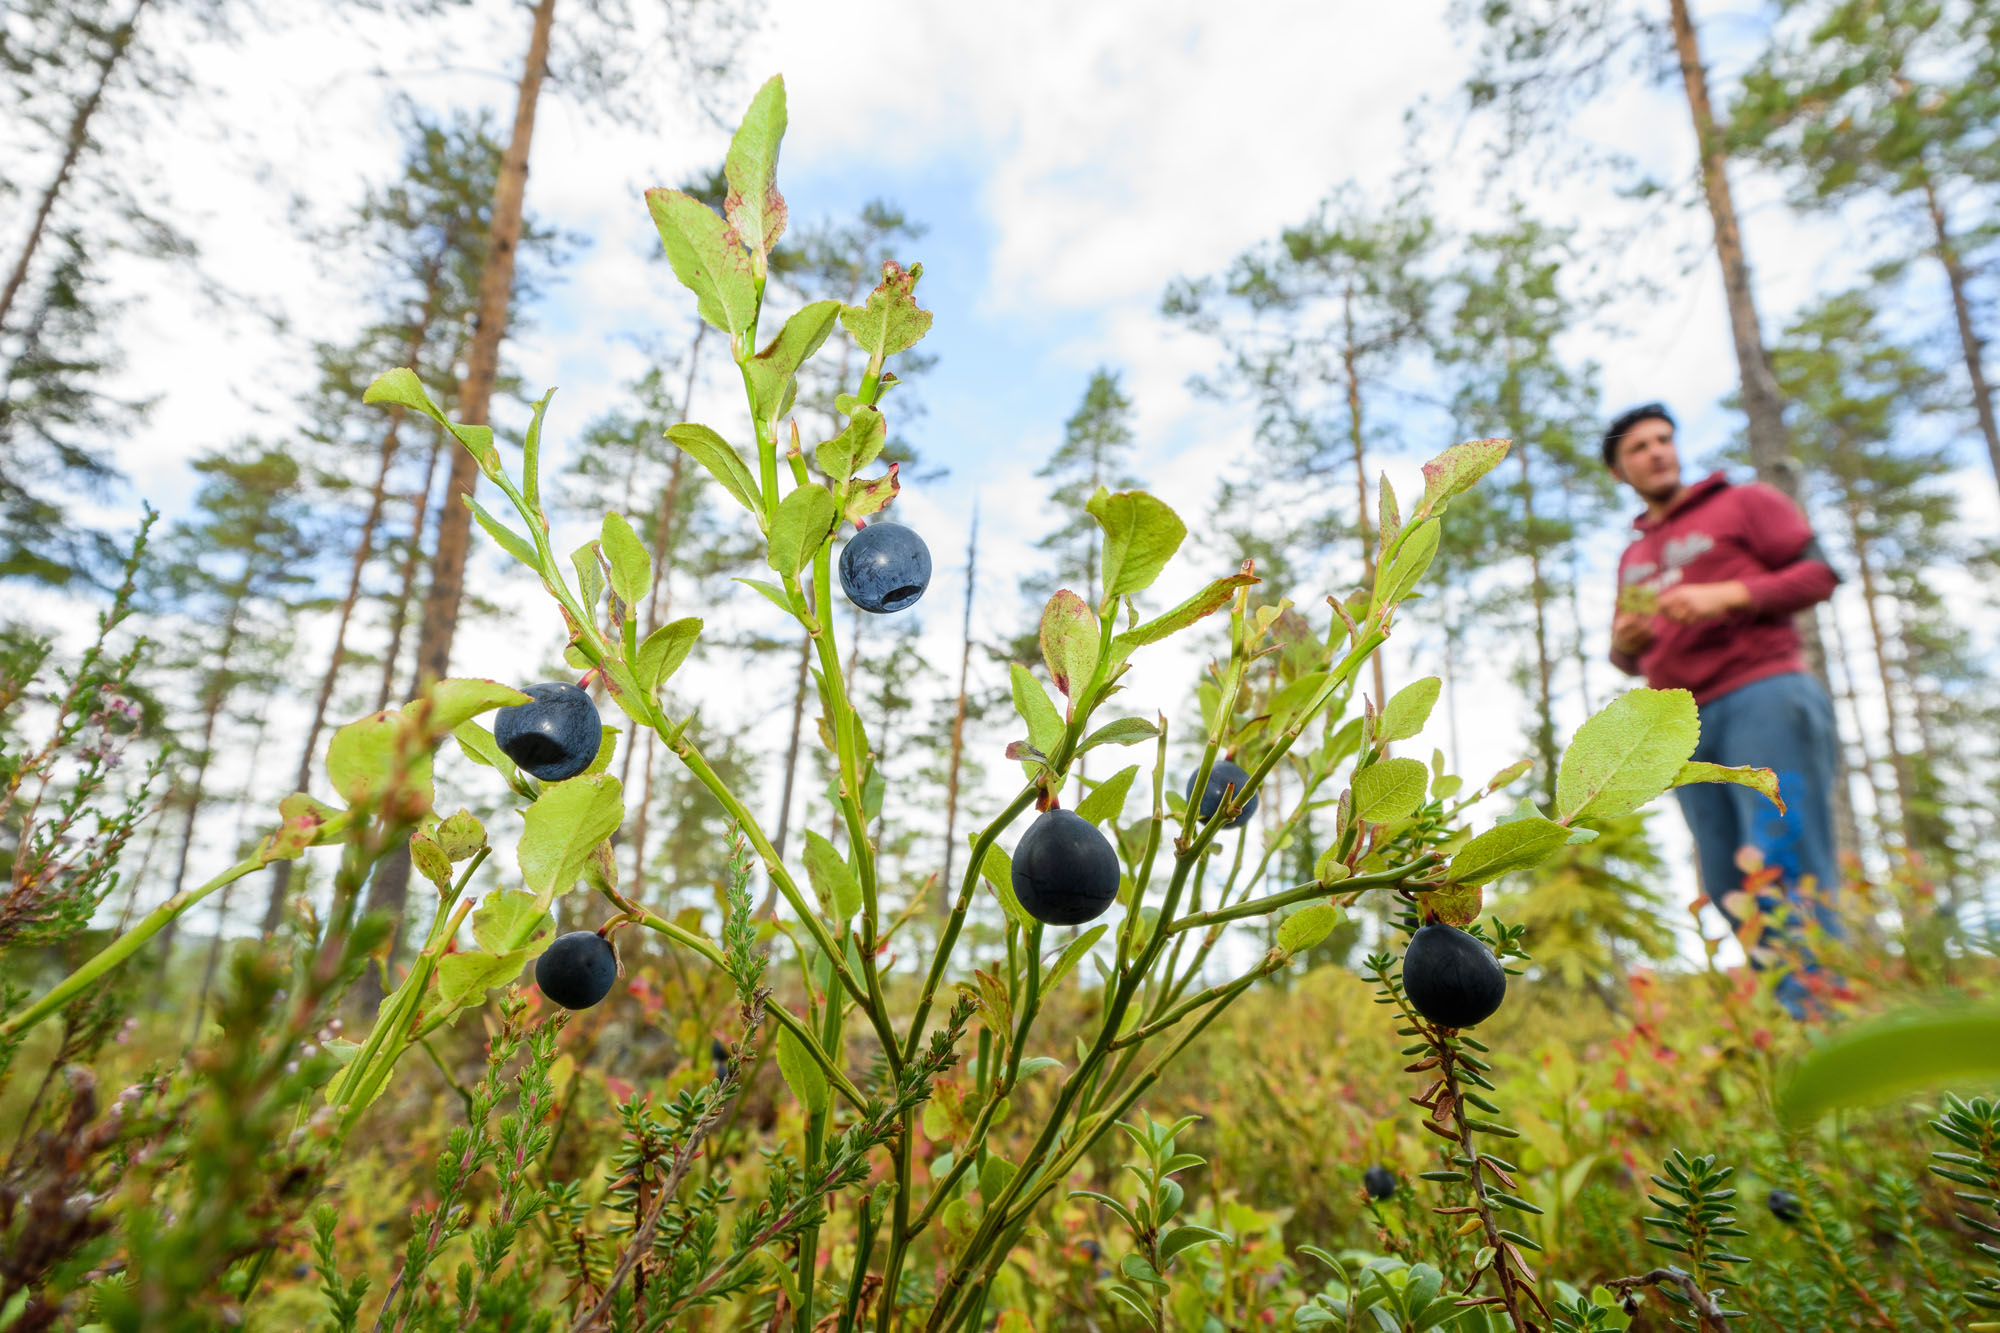 Picking blueberries in the forest..